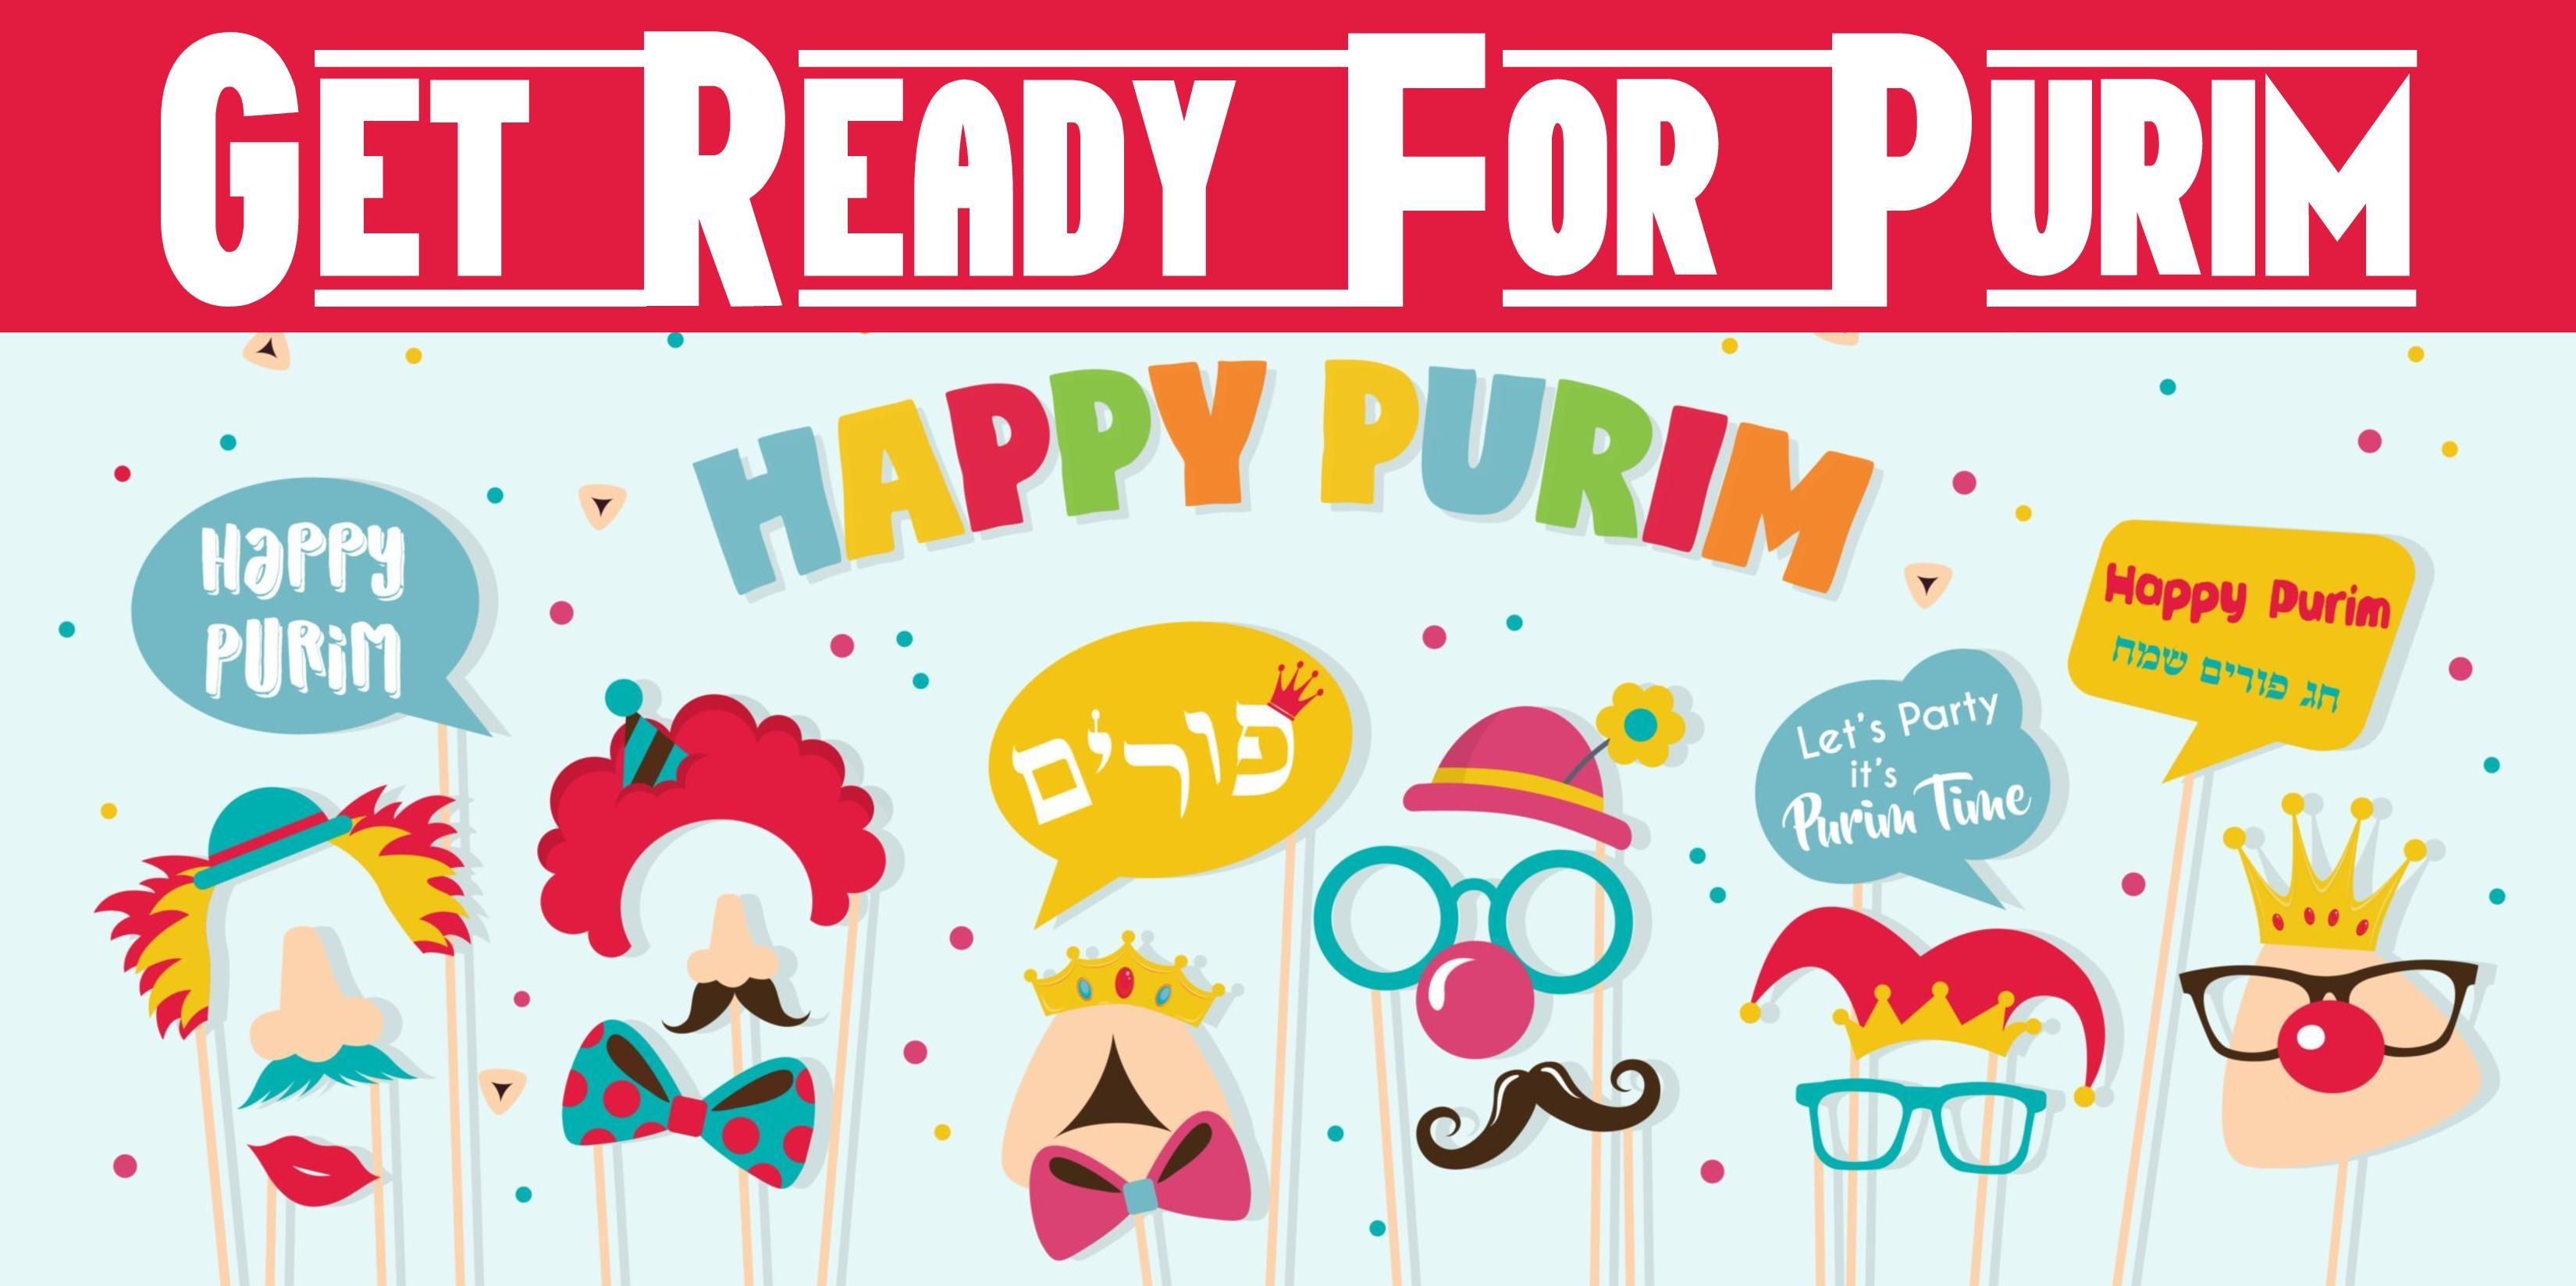 "<a href=""https://www.woodburyjc.org/event/purim-extravaganza.html""